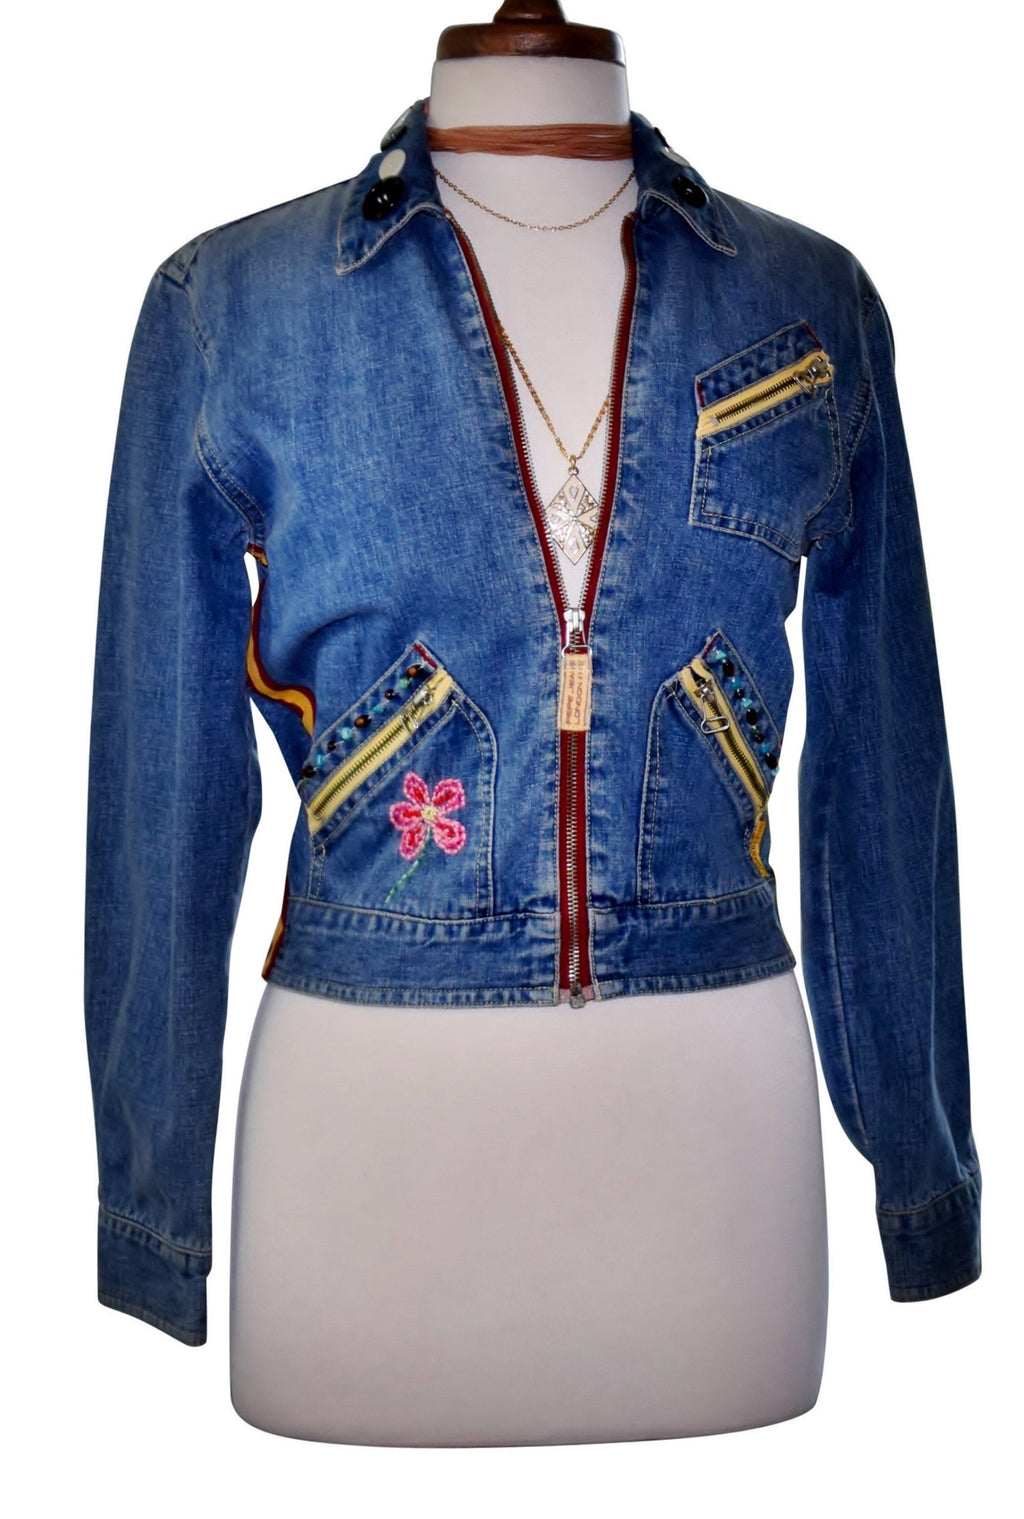 Festival Embroidered Beaded Denim Crop Jacket, Blue Denim, Logo, Sz S/M - Ysabel Vintage Online